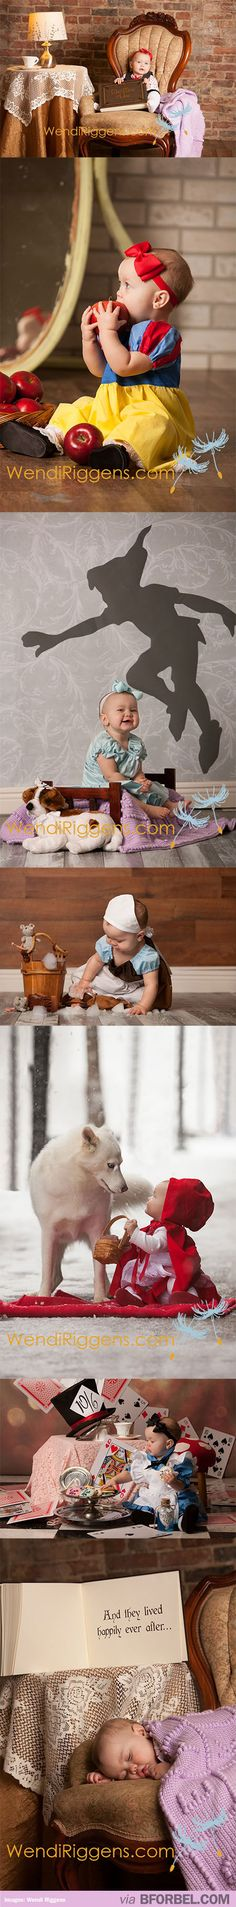 What an adorable photo shoot idea!  At first, she's reading the fairytale book then it shows her in each character for each one!  Last picture shows her asleep after all of her adventure!  So cute!  Oh my gosh, @Jess Pearl Pearl Pearl Liu Hewson... can we do this with Abigail?!